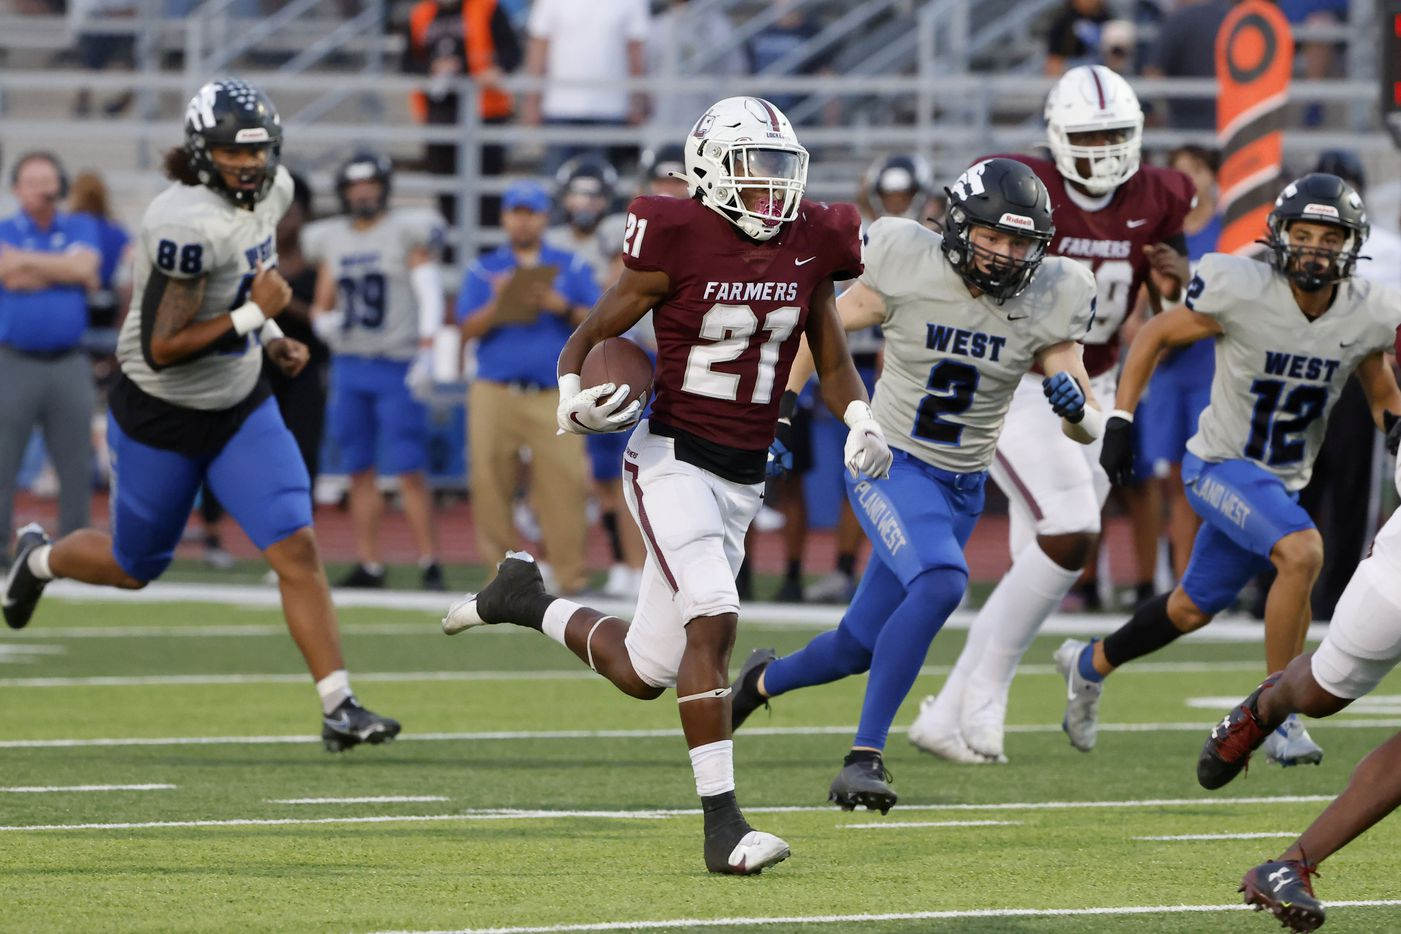 Lewisville running back Viron Ellison is chased by Plano West defender Reese Gunby (2) as he runs for yardage during the first half of a high school football game in Lewisville, Texas on Friday, Sept. 24, 2021. (Michael Ainsworth/Special Contributor)